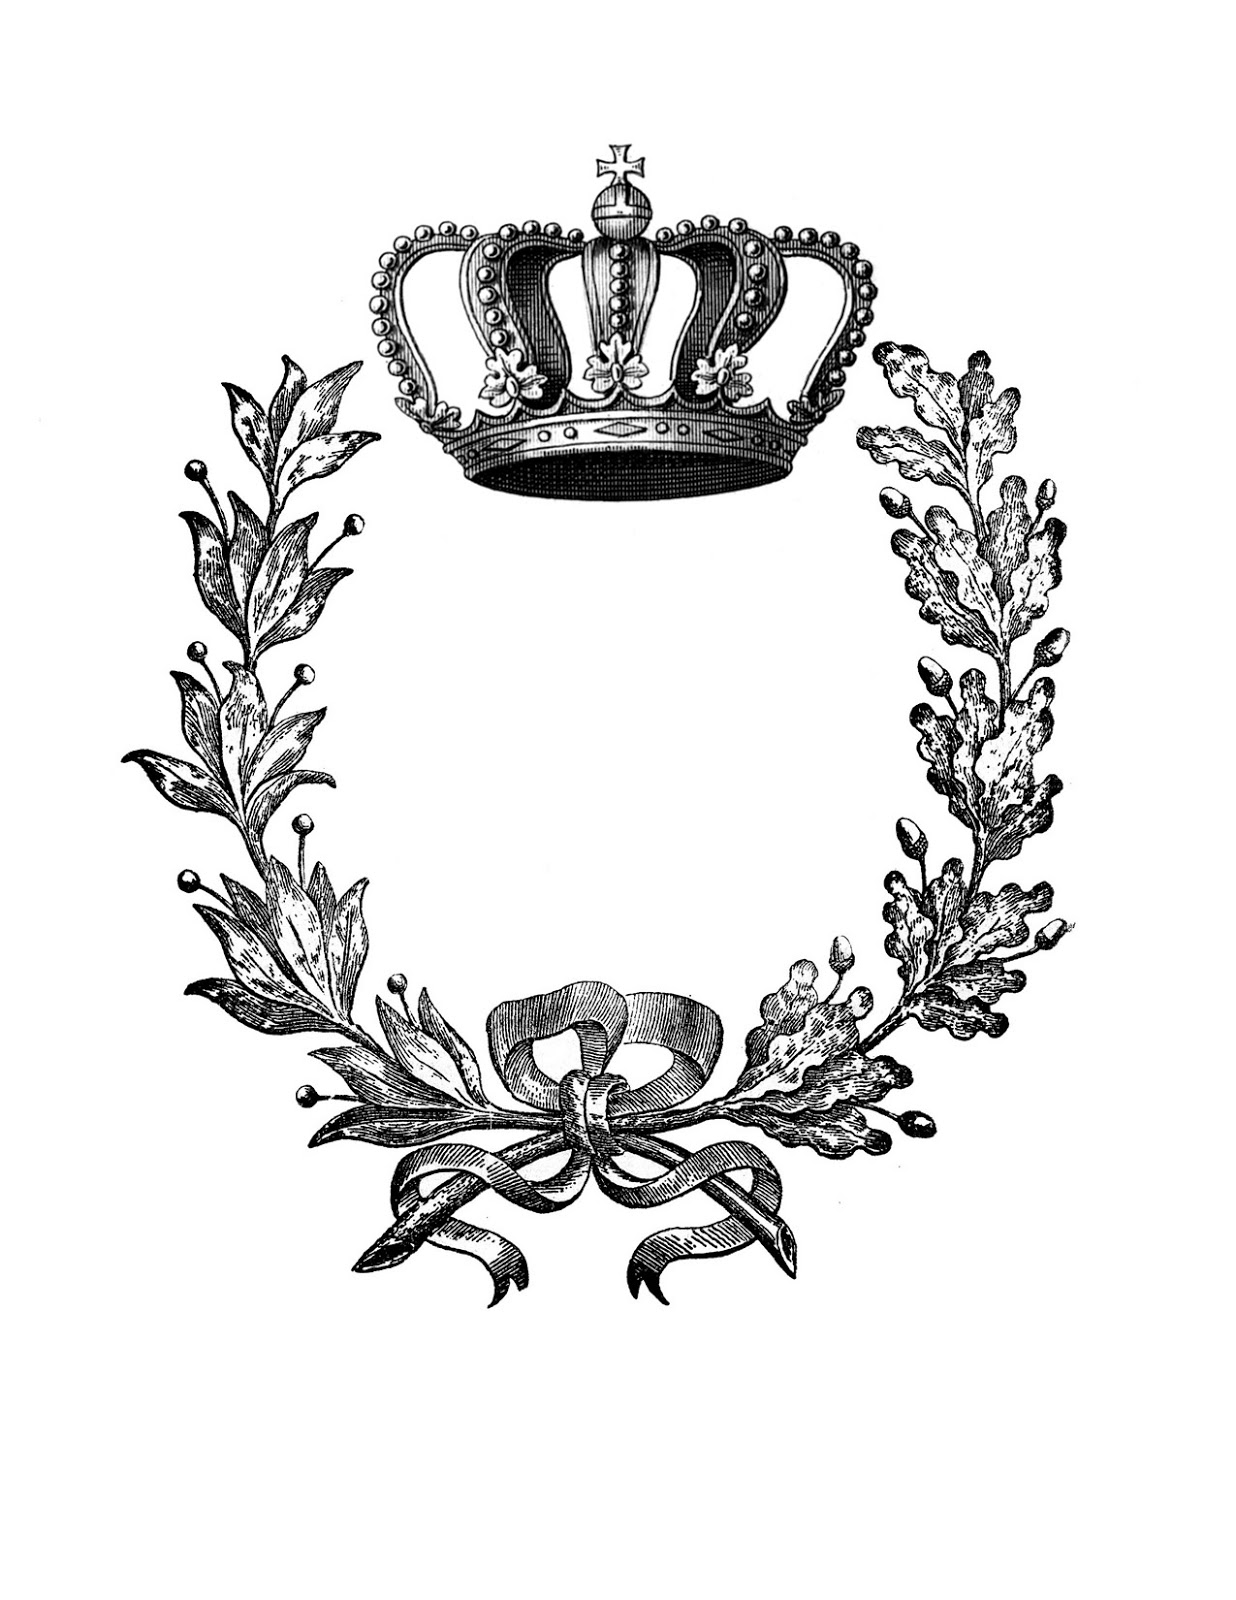 Iron On Transfer Wreath With Crown 2 The Graphics Fairy